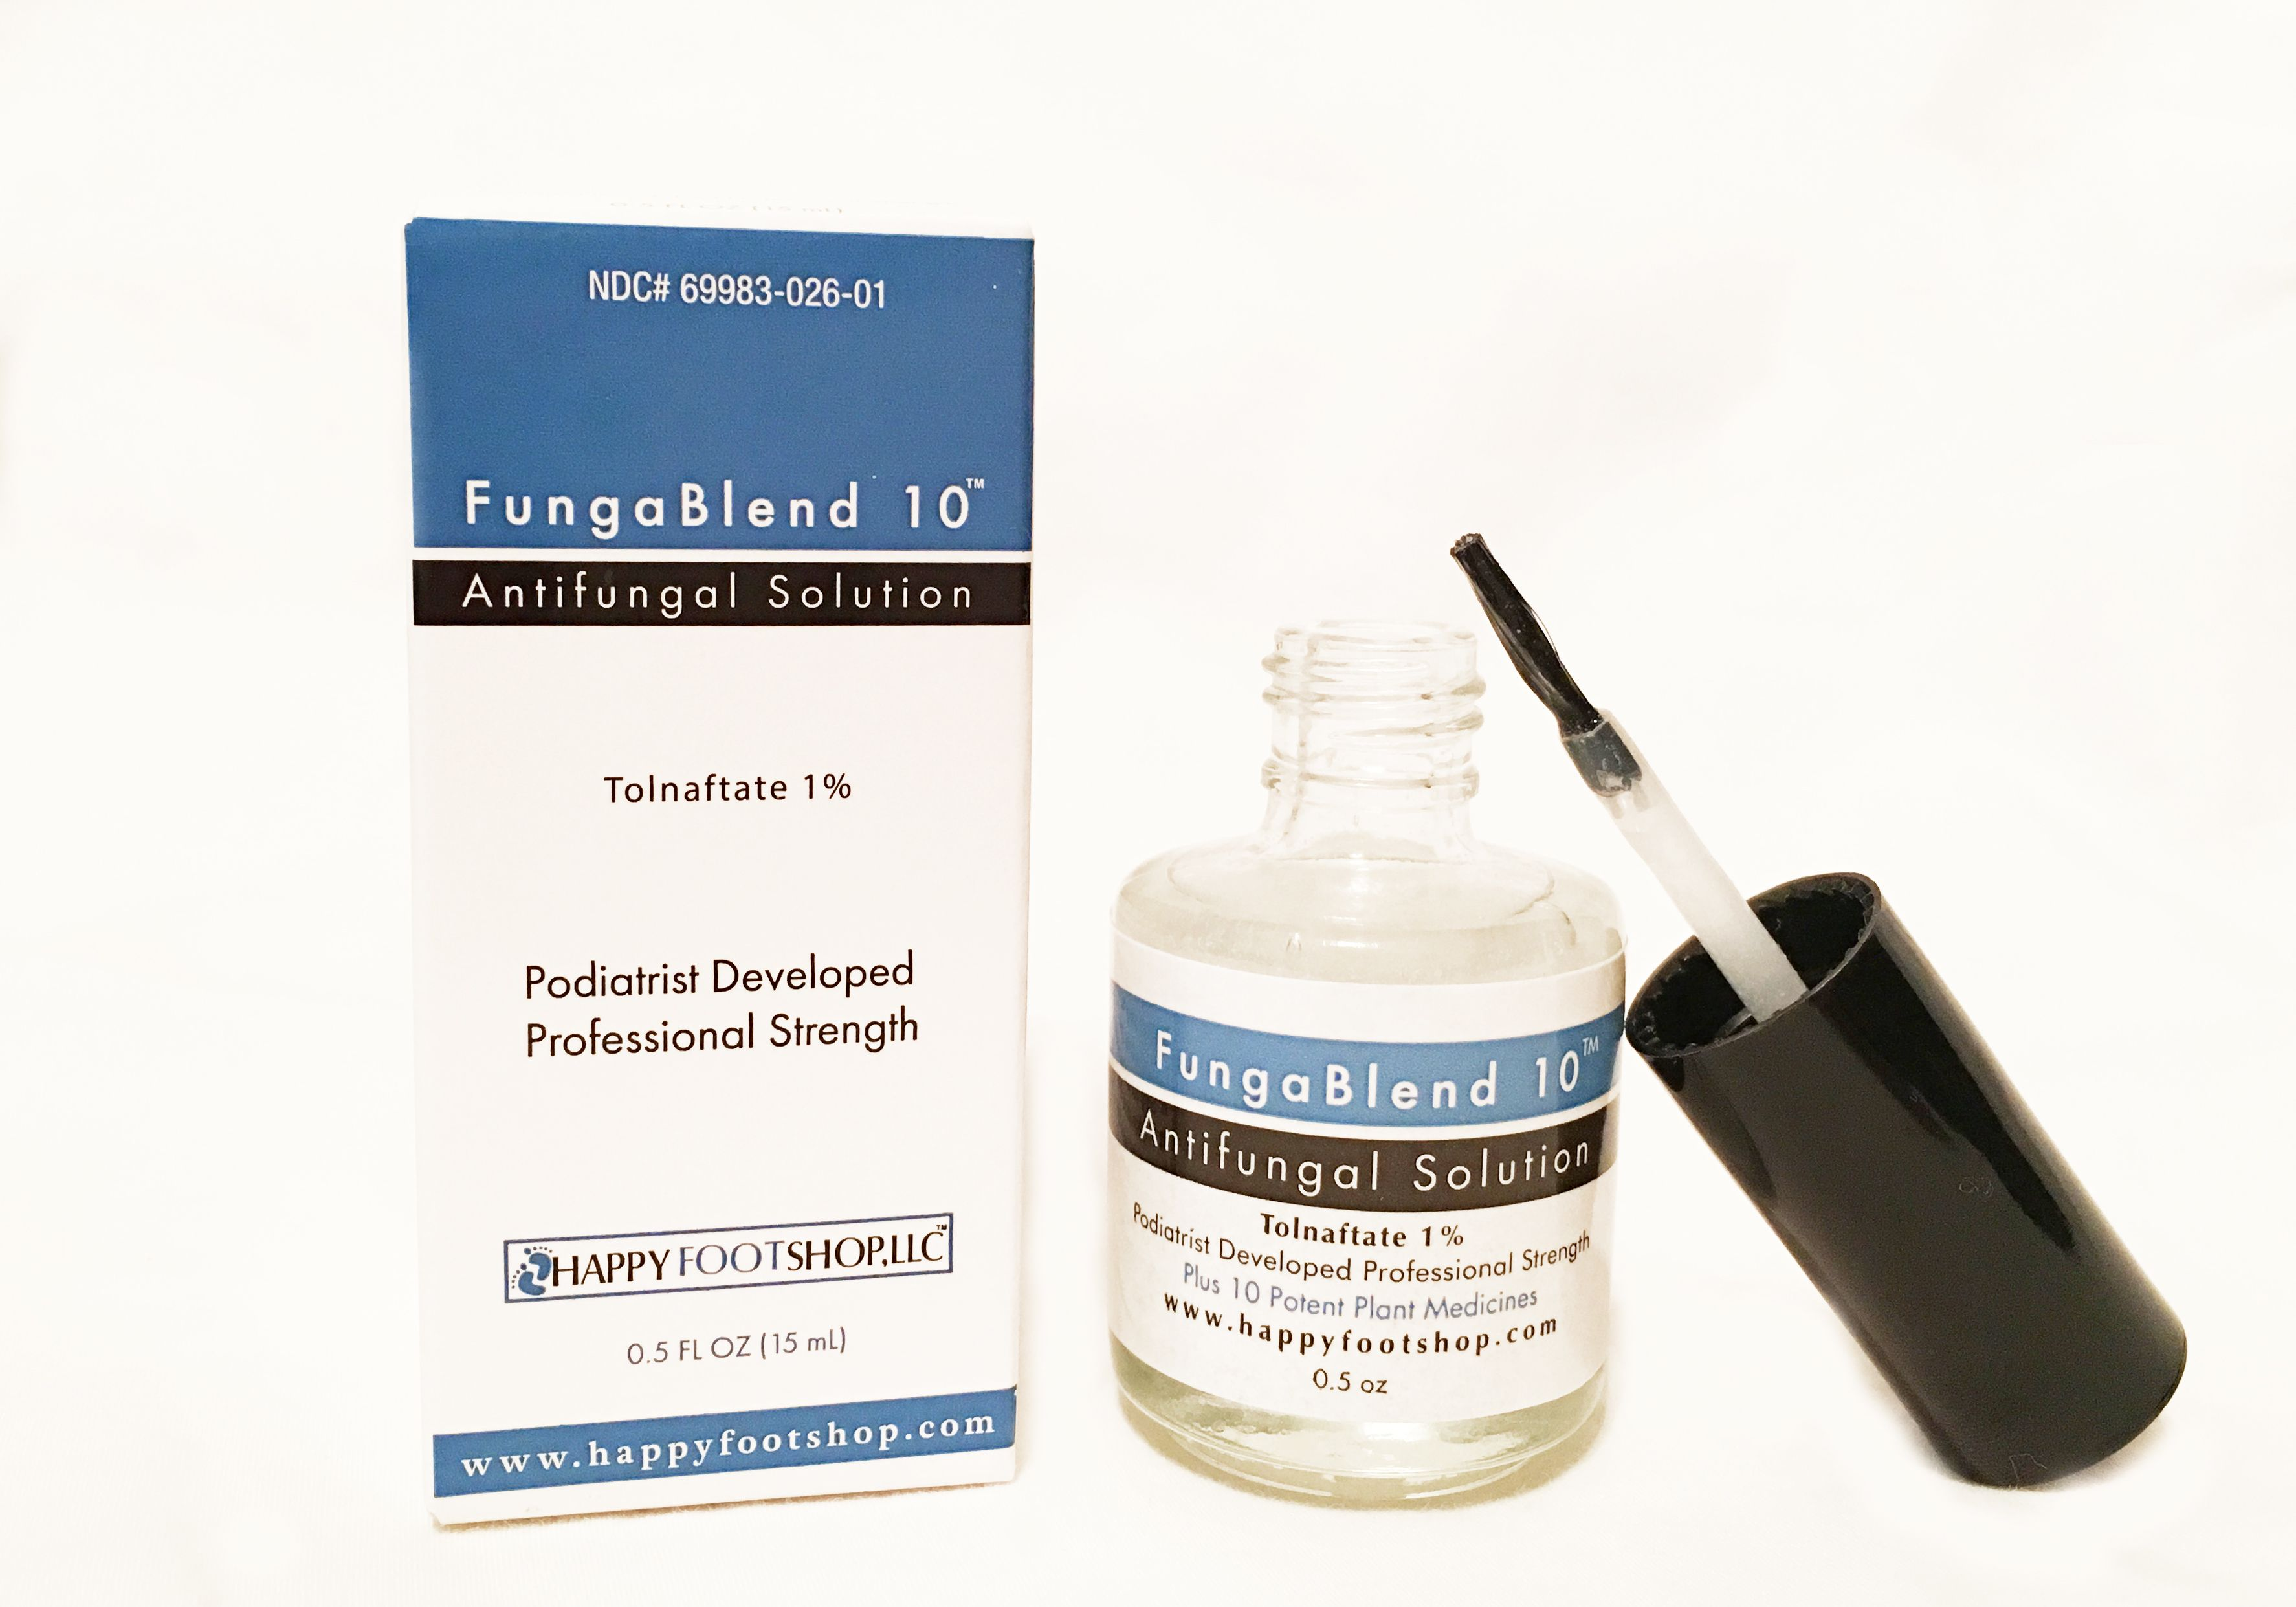 The first topical nail fungus treatment that blends 10 proven strongest plant medicines with 1% Tolnaftate. Plant medicines and Tolnaftate as stand- alone ...